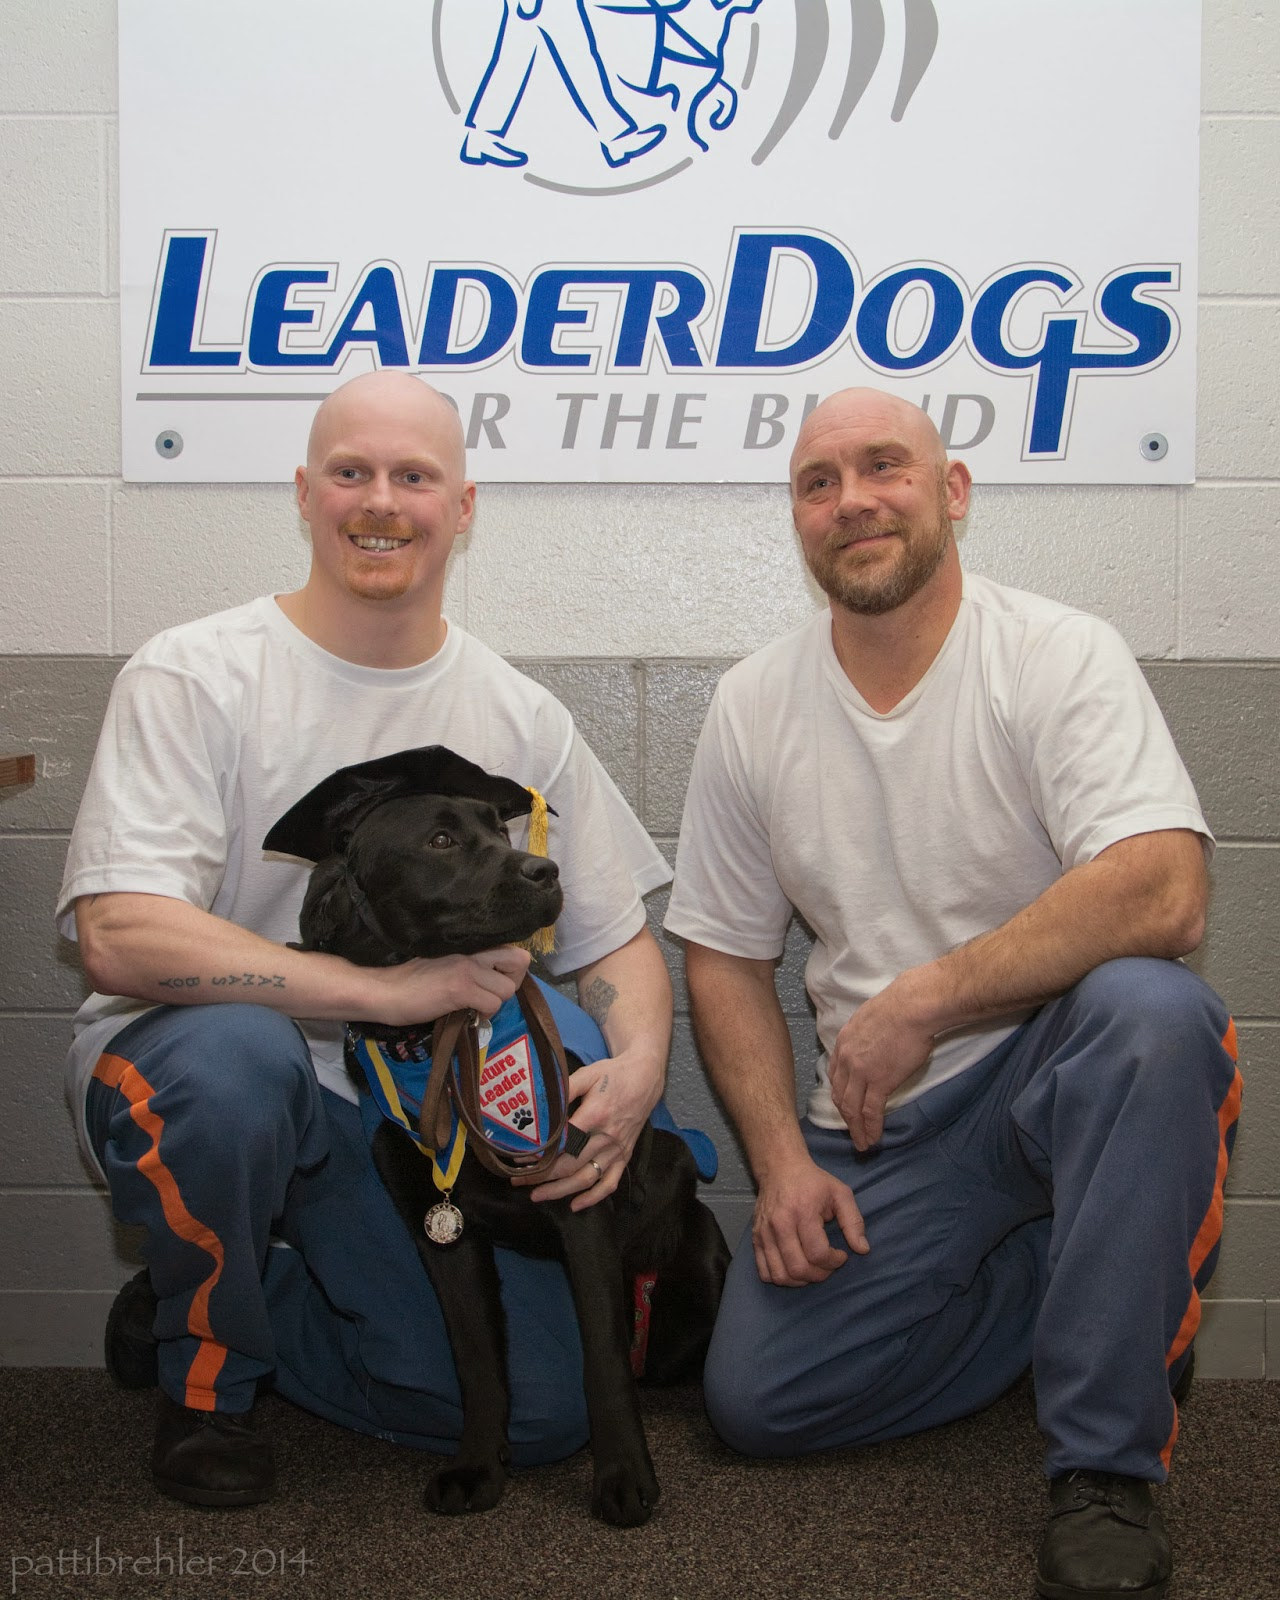 Two men are kneeling on one leg with a black lab sitting in front of the man on the left. That man is holding the dog with his hands. The men are wearing white t-shirts and blue pants with orange strips. Both men have shaved heads. The lab is wearing a black graduation cap with a yellow and lube ribbon around its neck with a medal and a blue bandana. A white poster is on the wall behind them that says Leader Dogs for the Blind.